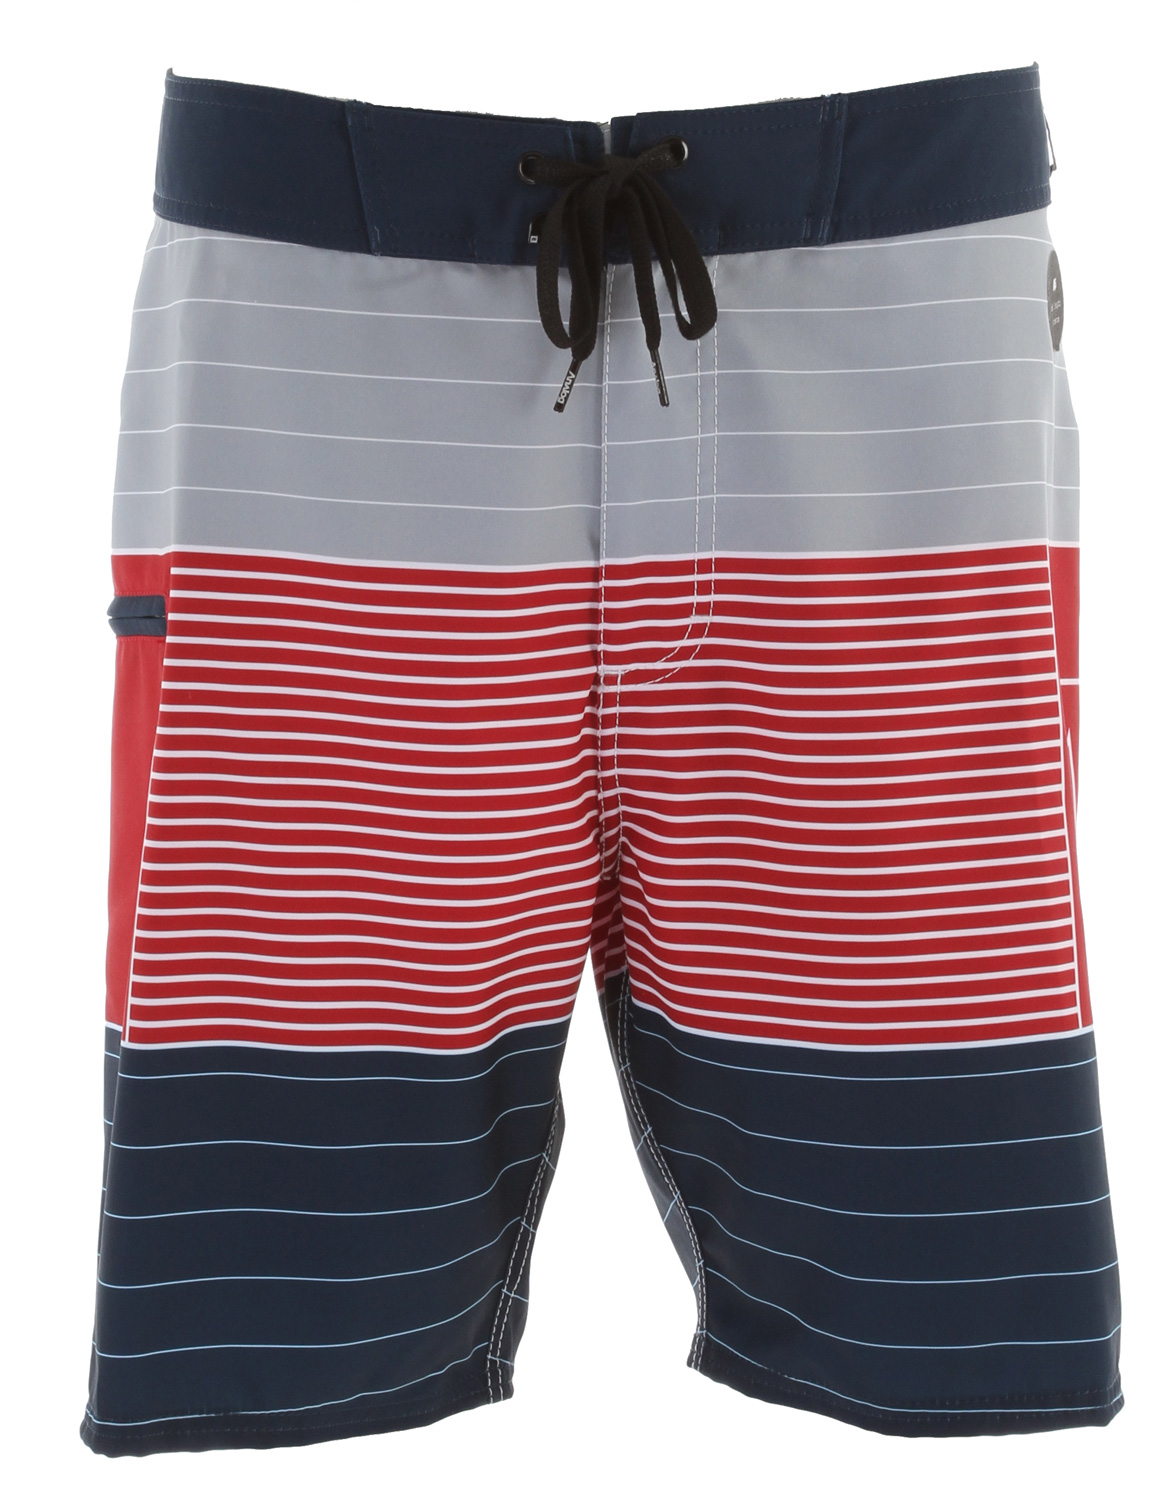 "Surf Key Features of the Analog Locked Up 20"" Boardshorts: 20"" zip fly board short with engineered horizontal logo stripe and contrast waistband and side pocket Anti-slip draw cord with anti-rash lycra at front fly and rise Signature selvedge denim belt loop and branding detail 100% Polyster 2 way stretch. - $40.95"